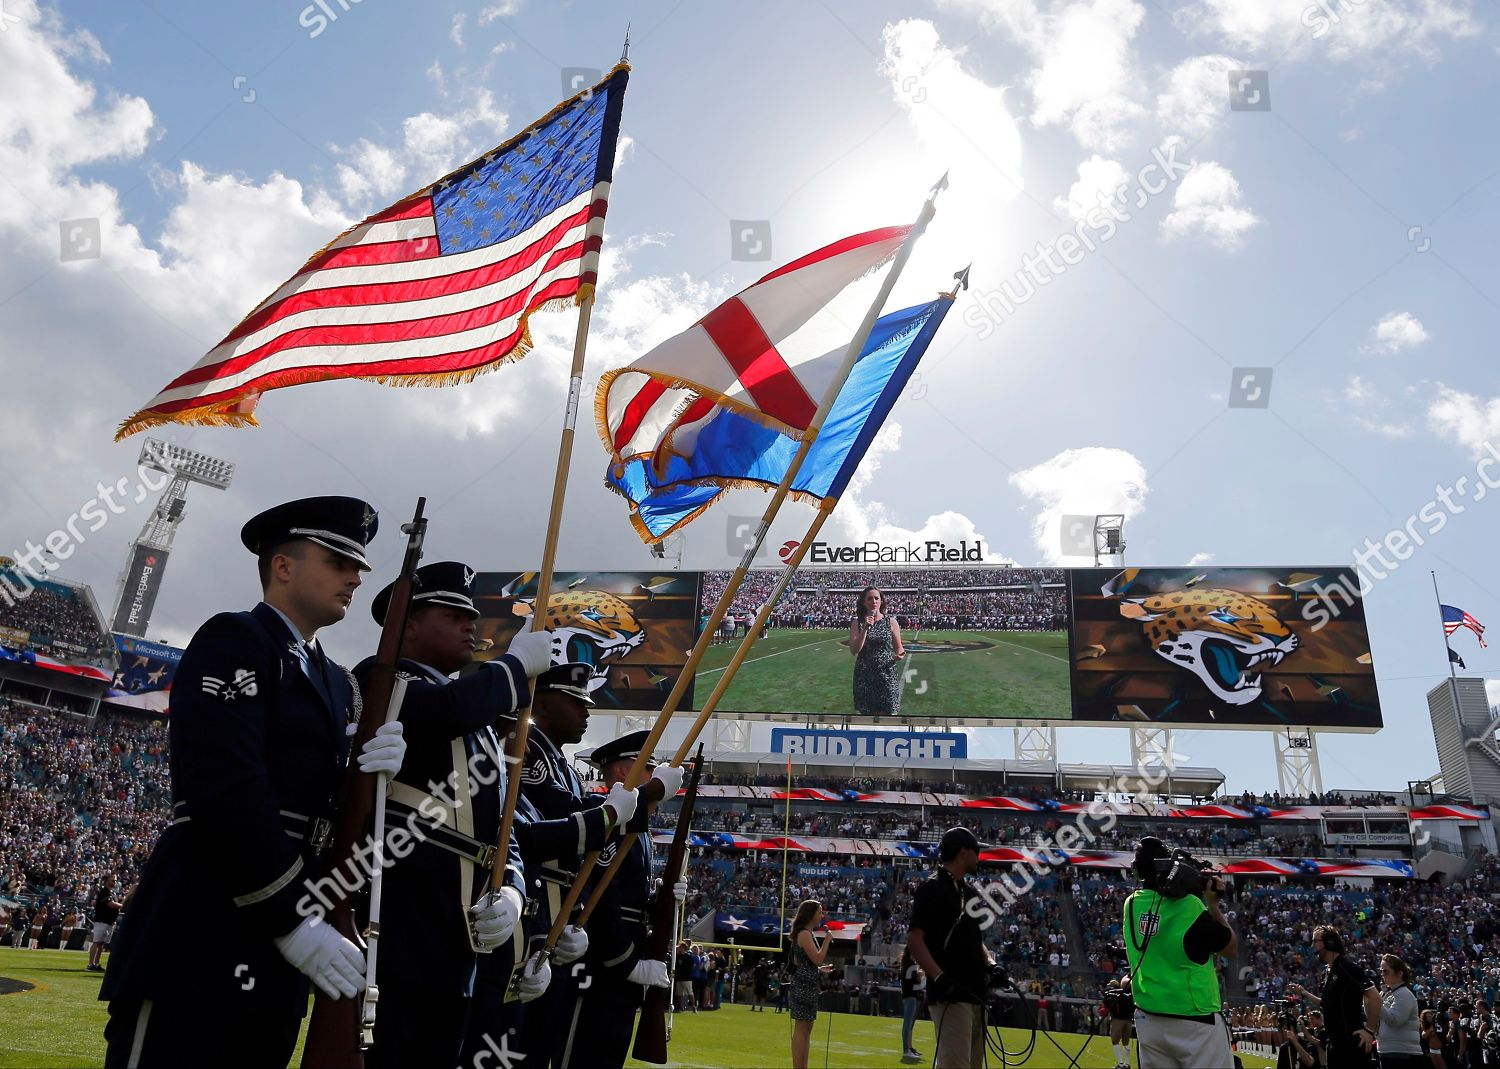 Color guard displays flags before NFL football Editorial Stock Photo